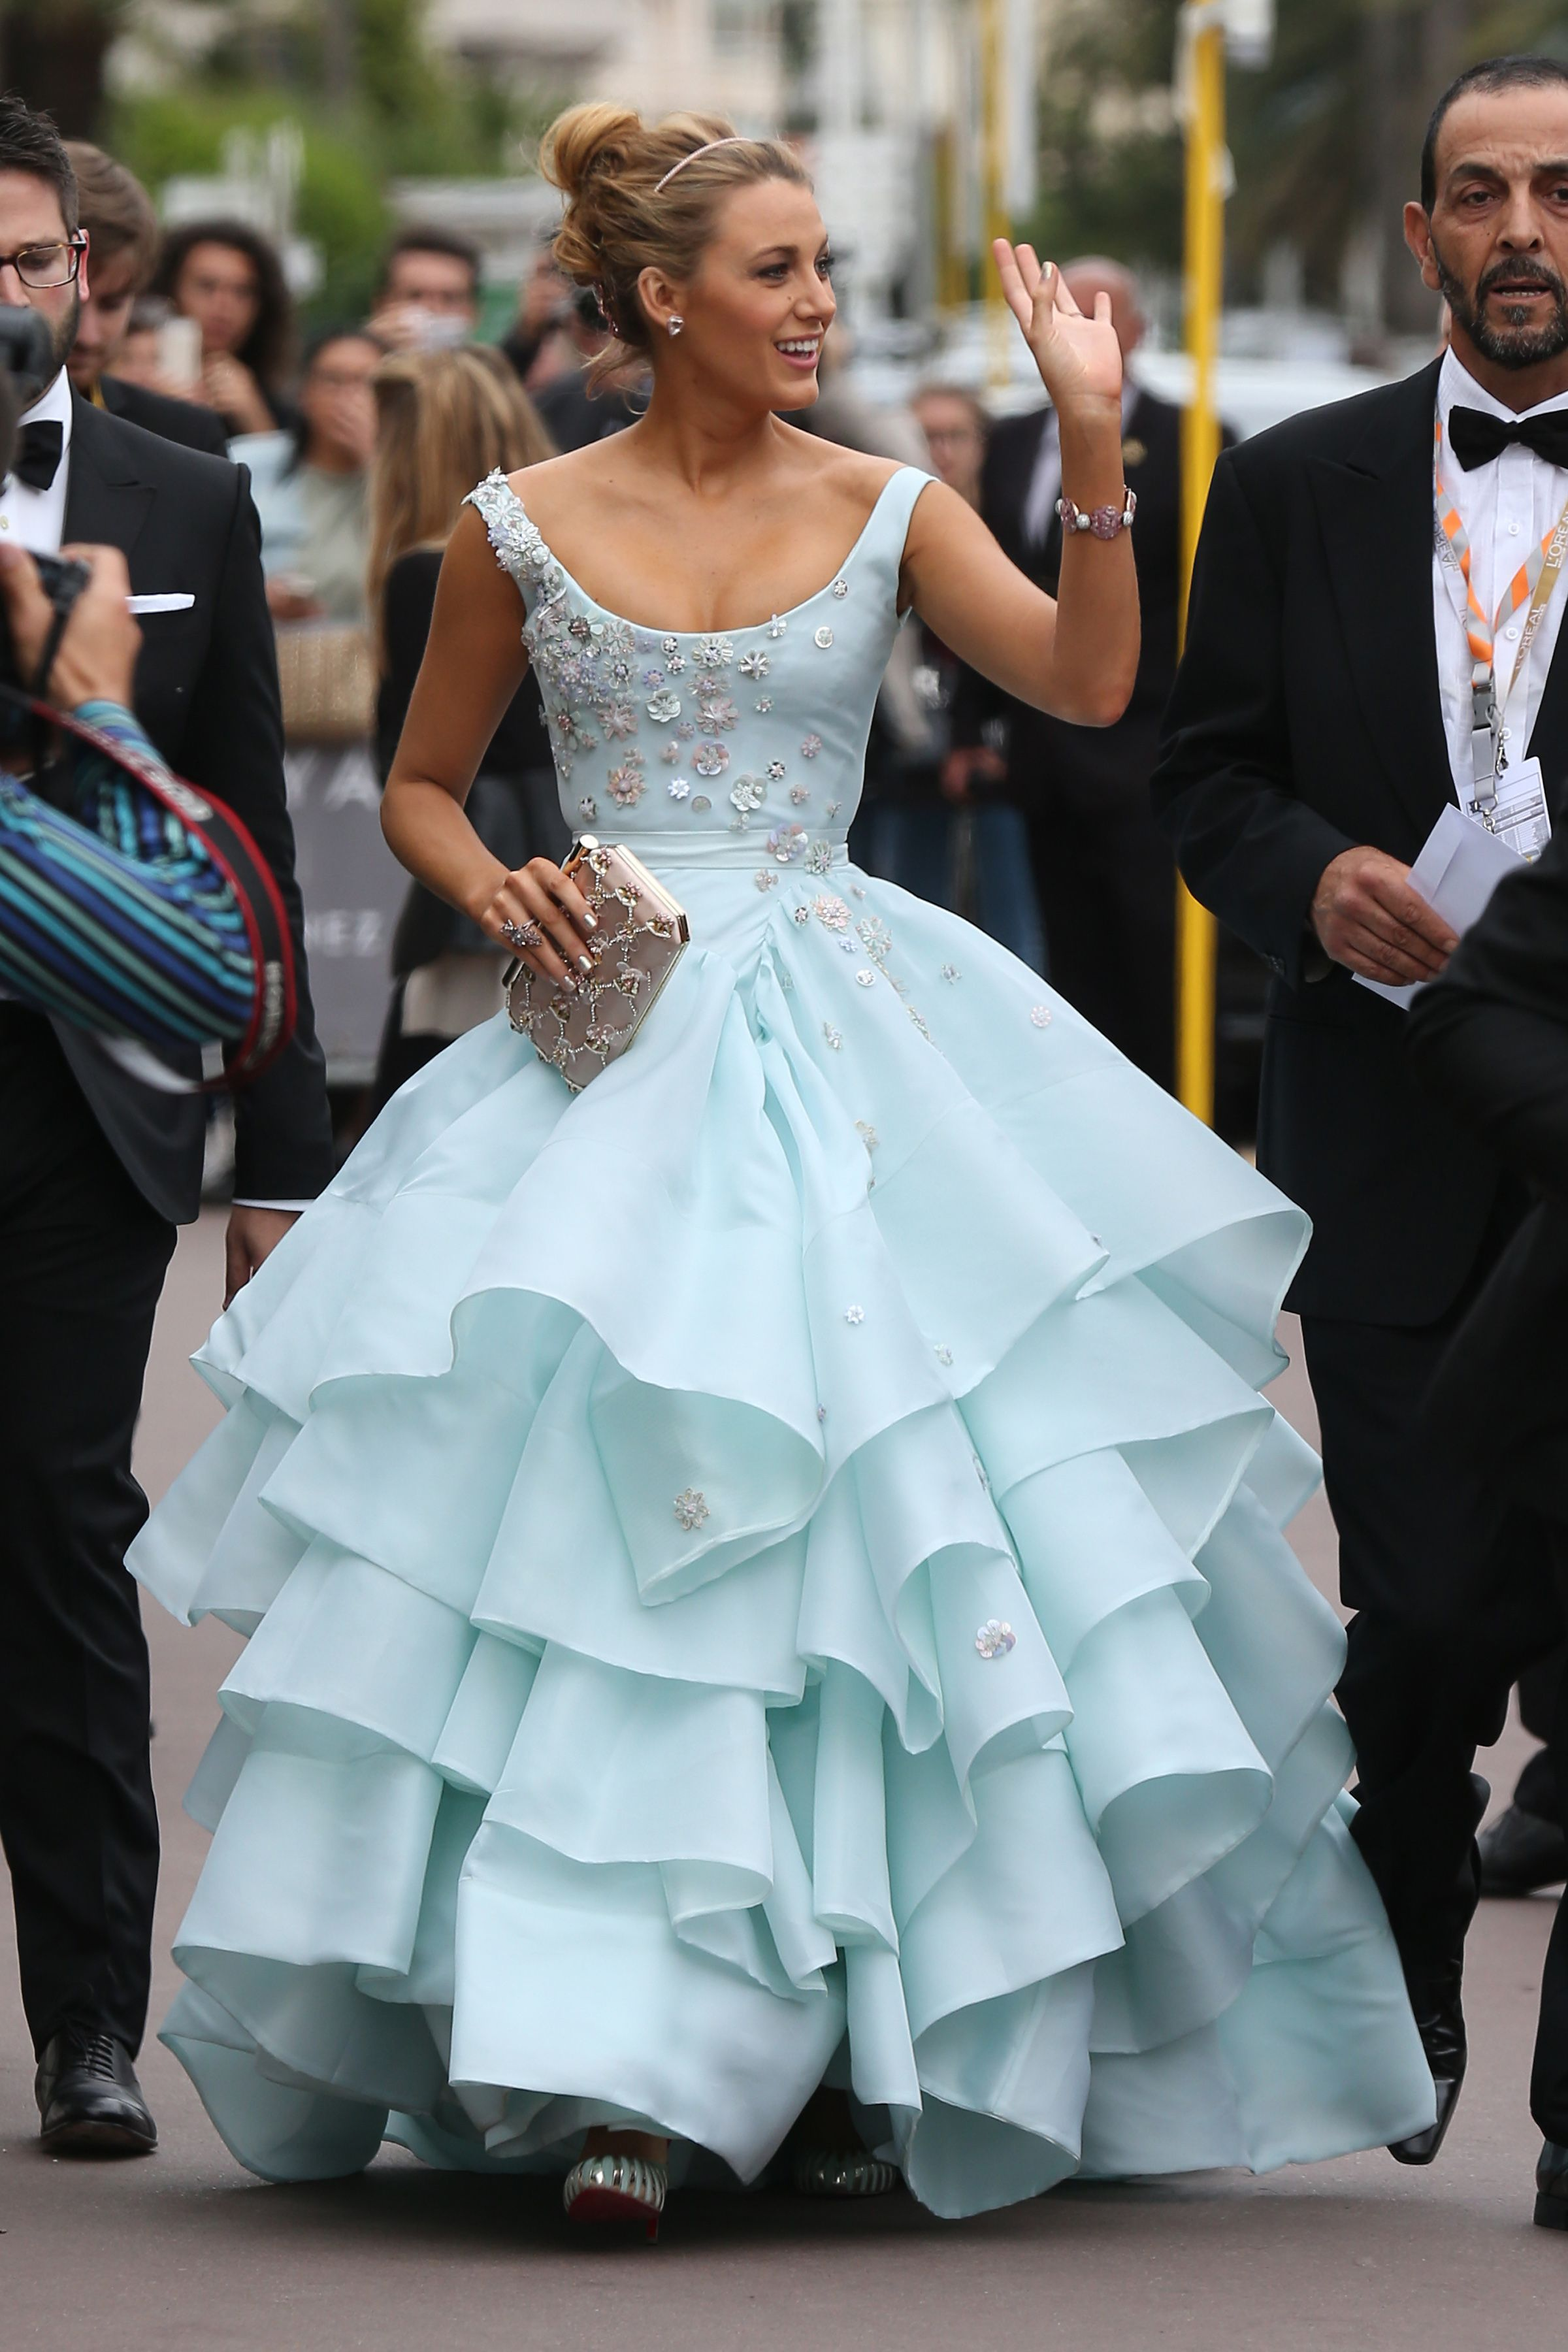 50+ Times Celebrities Dressed Like Disney Princesses